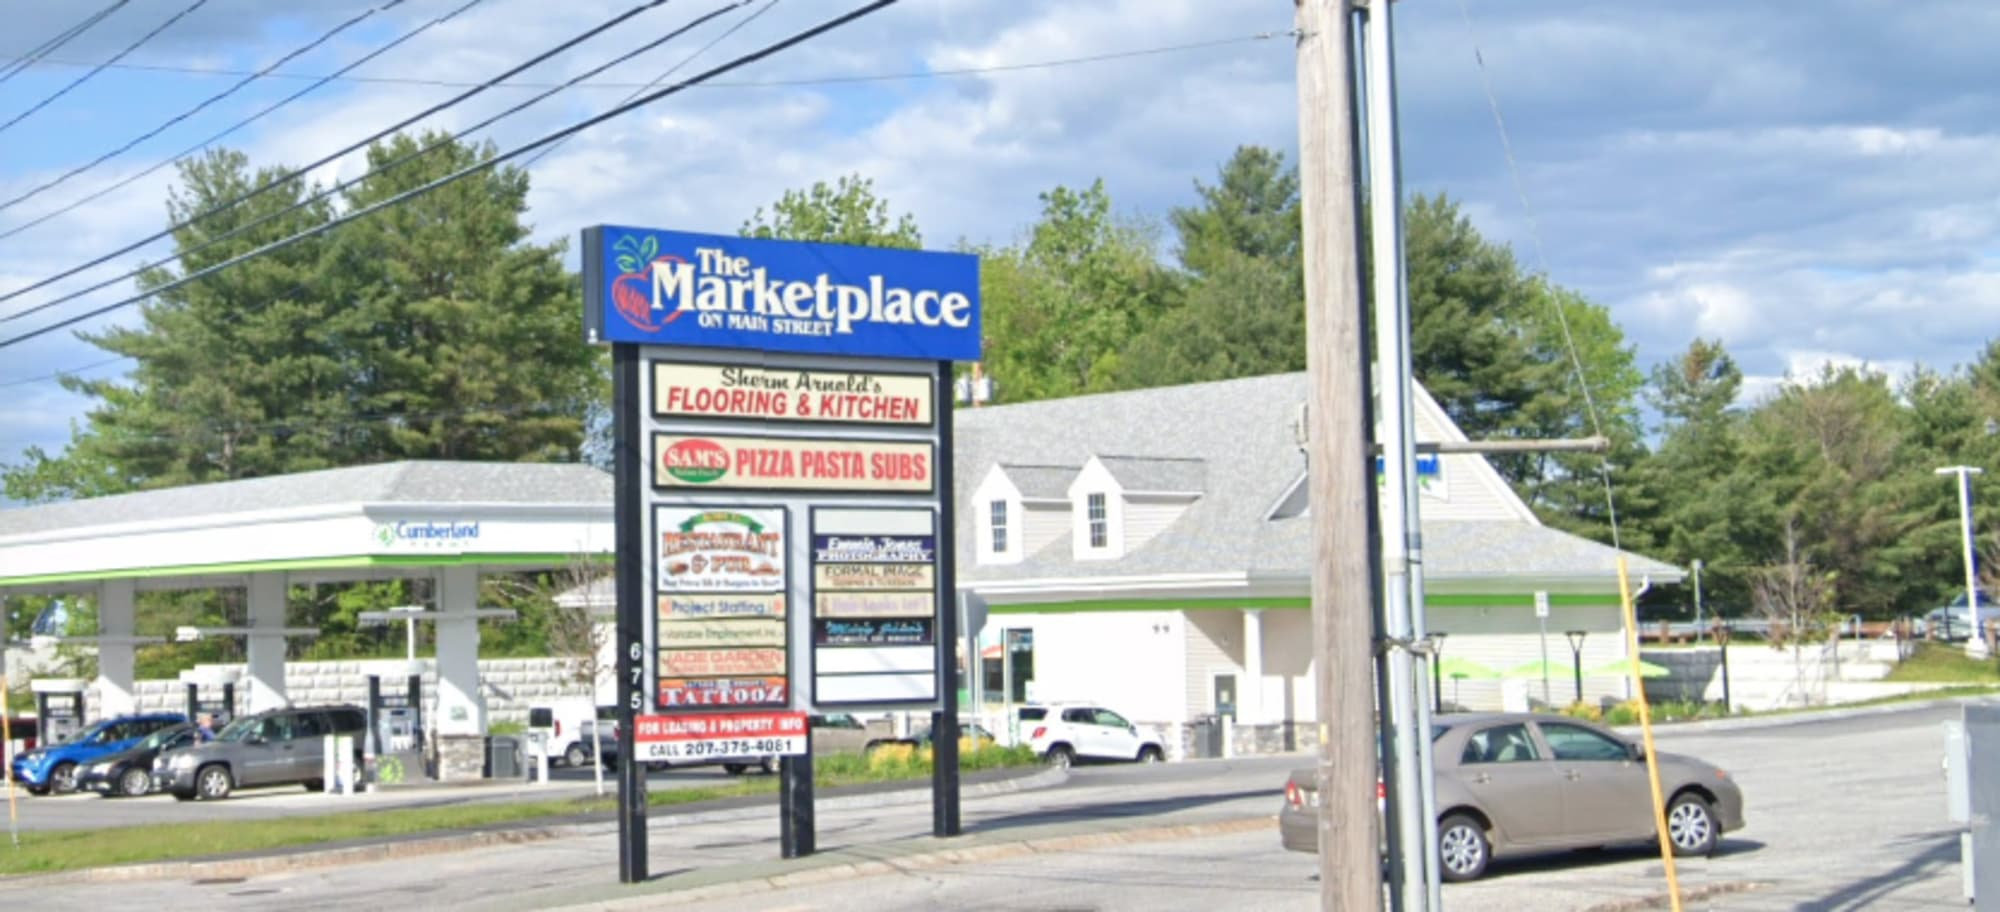 Sherm Arnolds Flooring and Kitchen - 675 Main St Lewiston, ME 04240